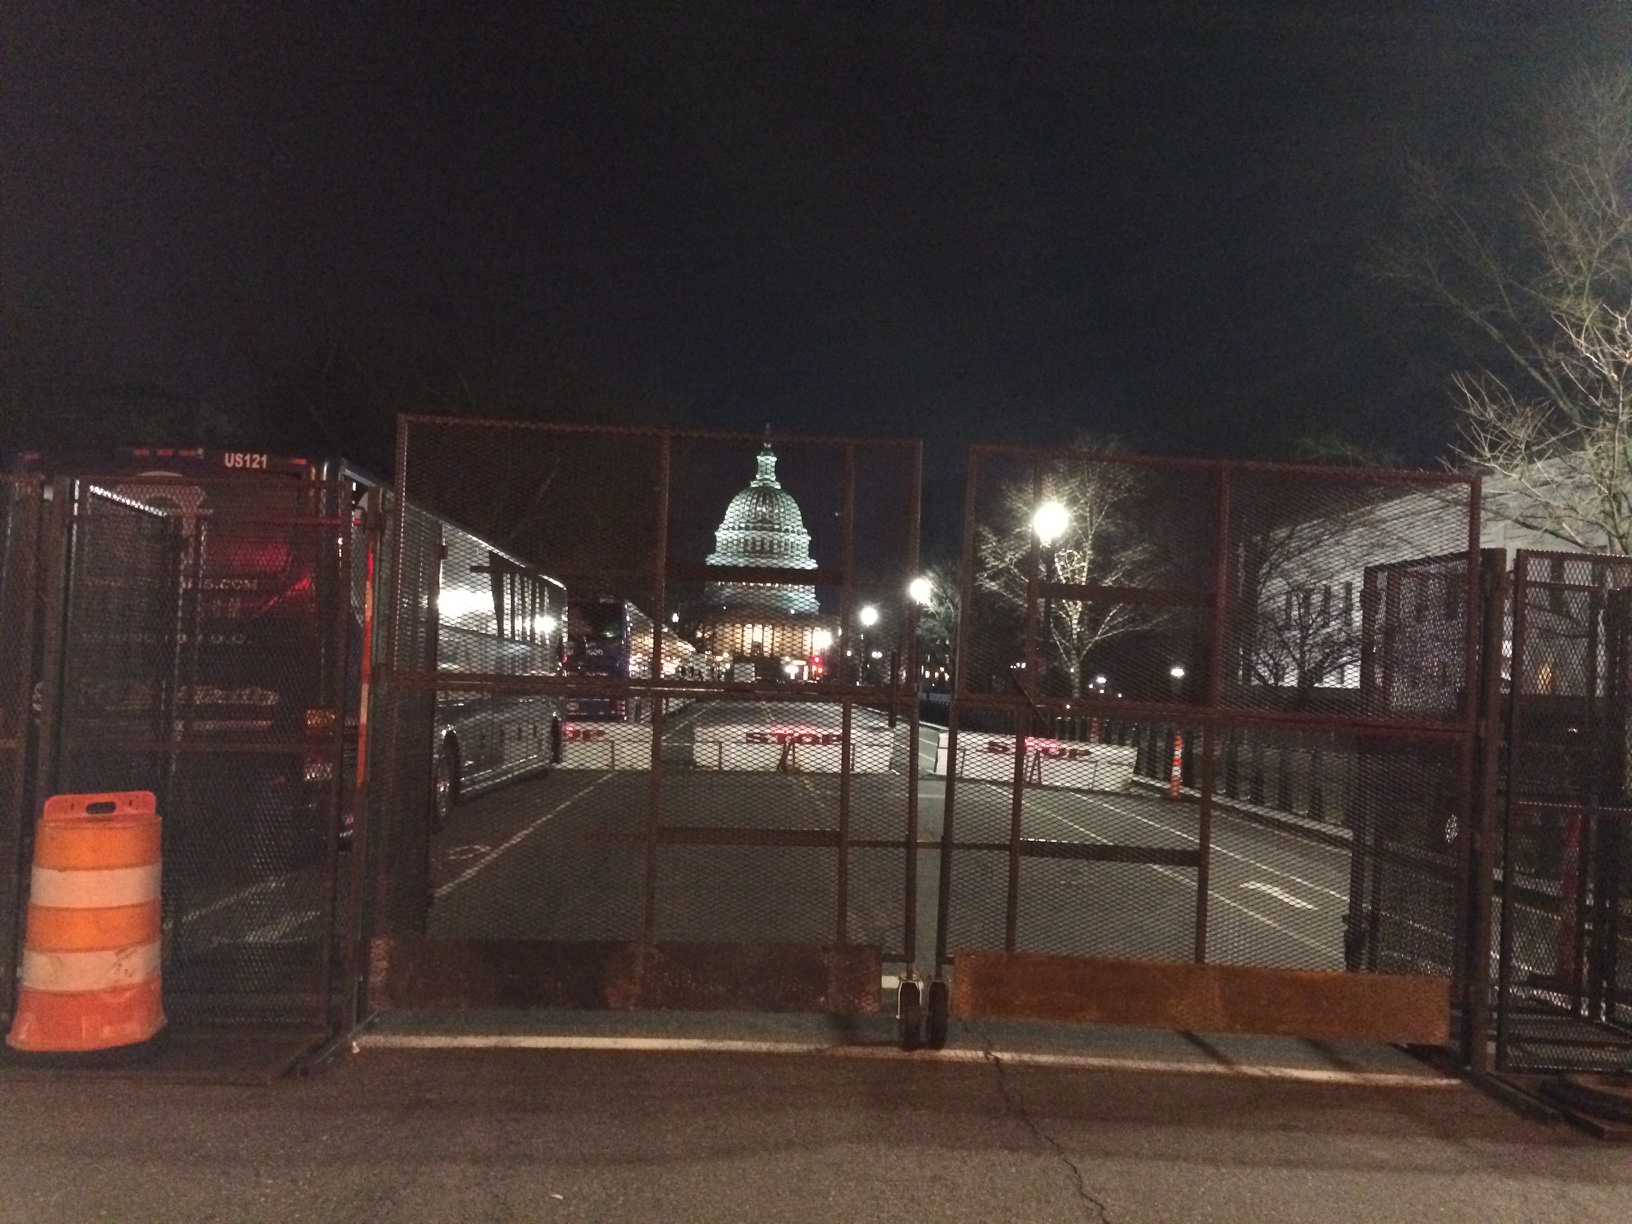 Many roads around the capitol are closed today in light of Inauguration Day activities. (WTOP/Nick Iannelli)